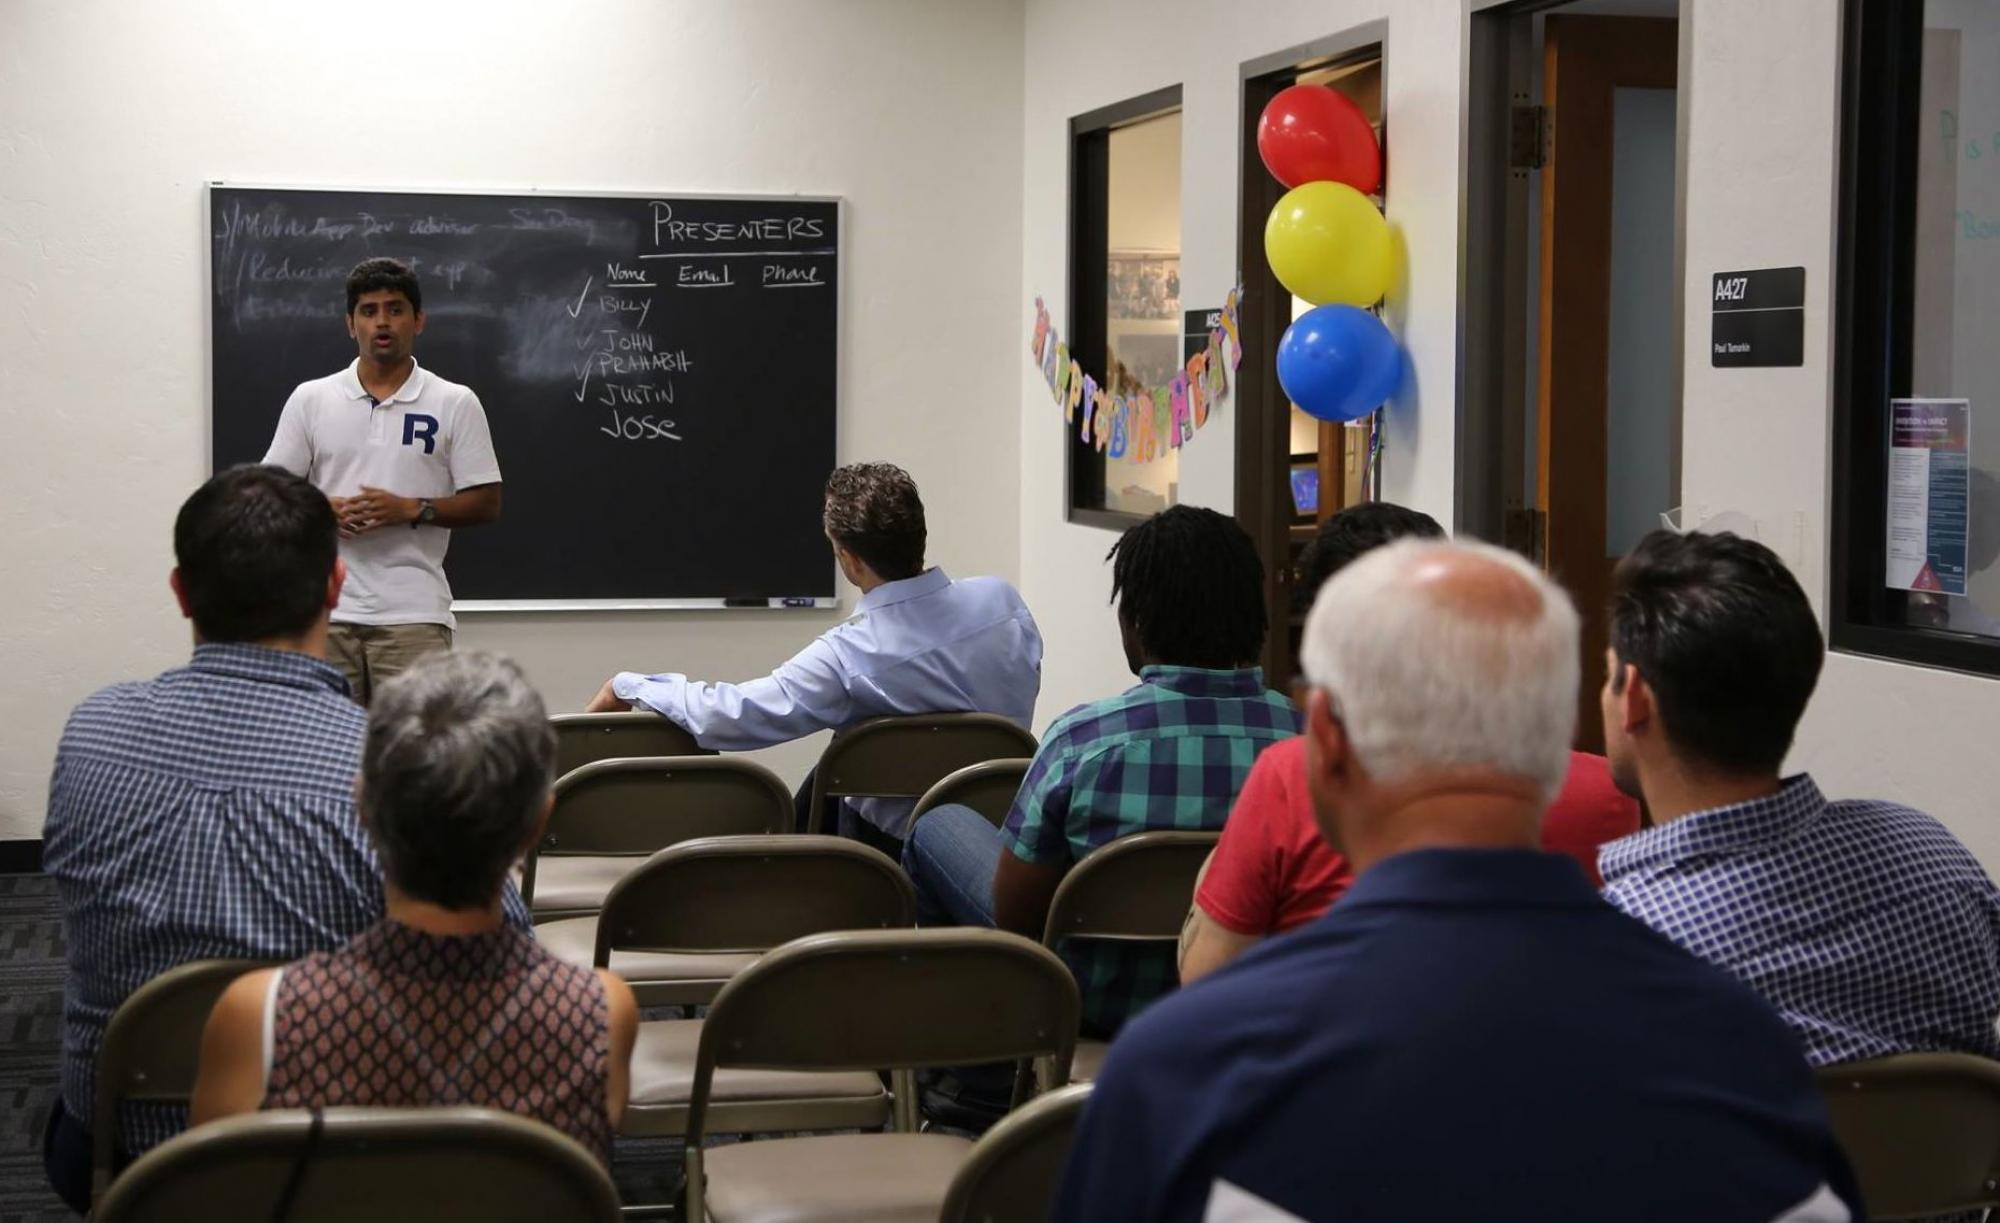 Praharsh Srinivasula, a first-year master's student studying computer science, pitches his idea for a new organic food tracking app.